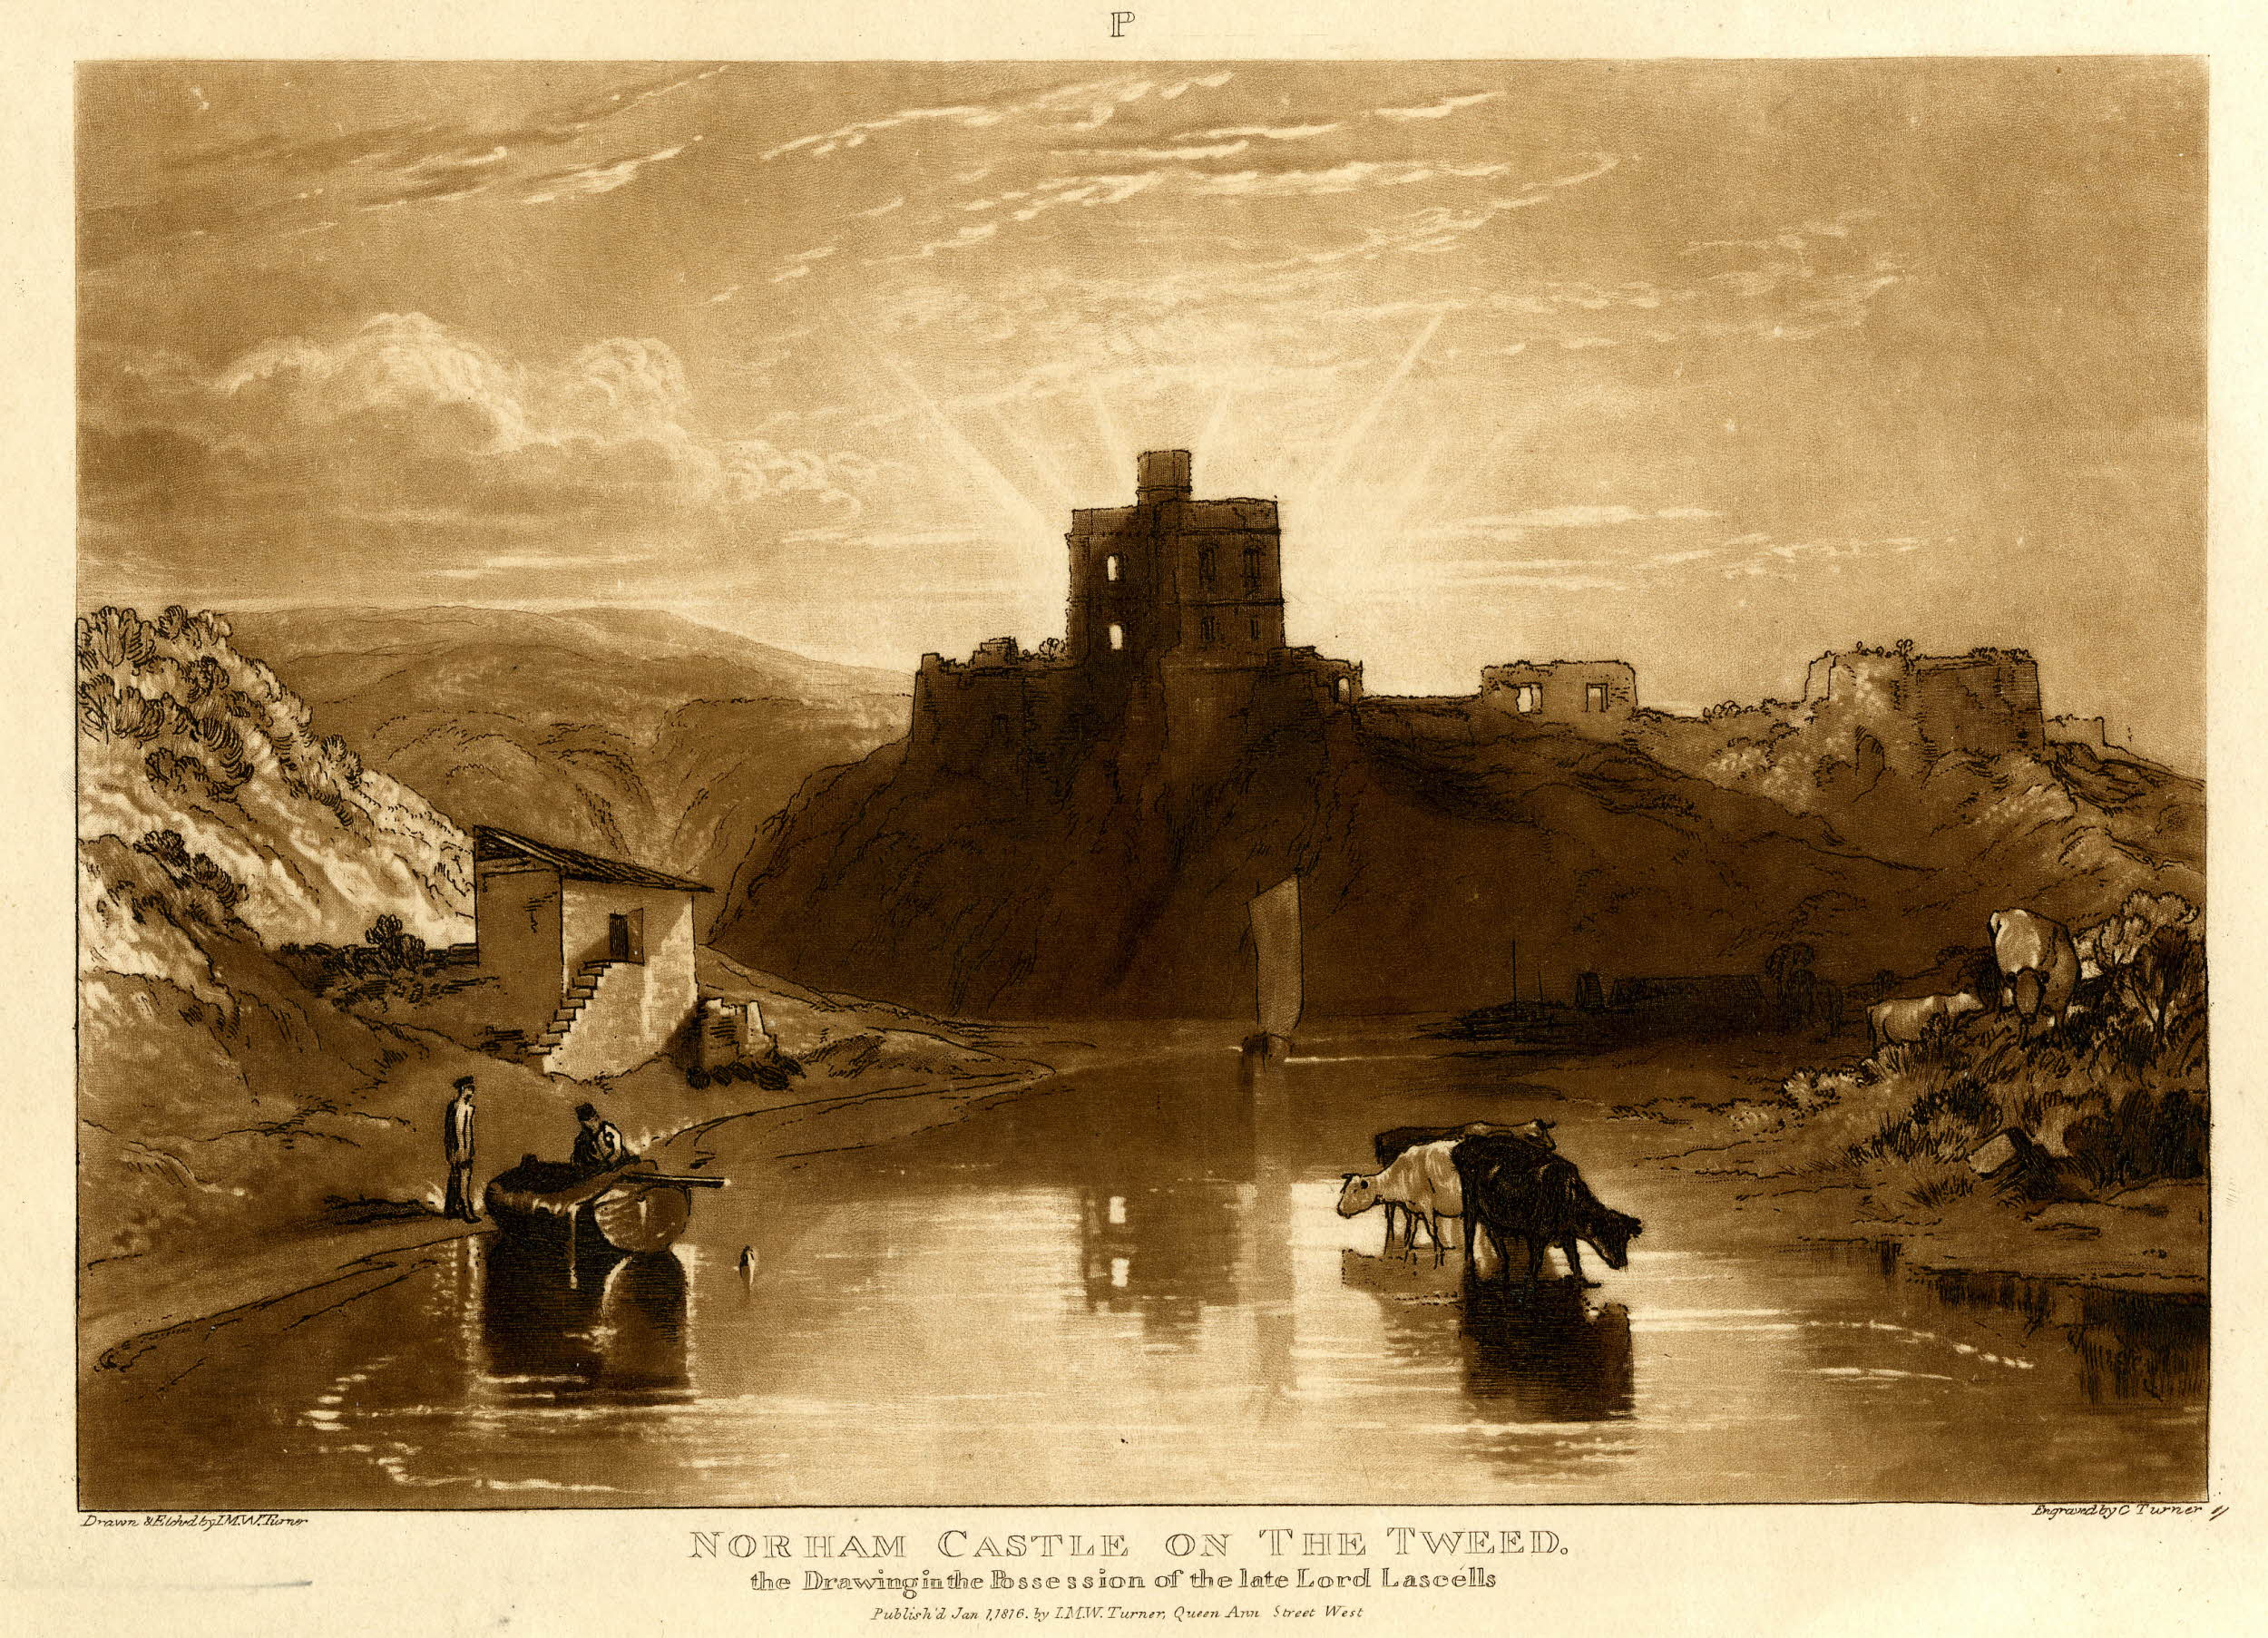 Charles Turner (1773-1857) after Joseph Mallord William Turner (1775-1851), Norham Castle on the Tweed, London, 1 January 1816, mezzotint and etching